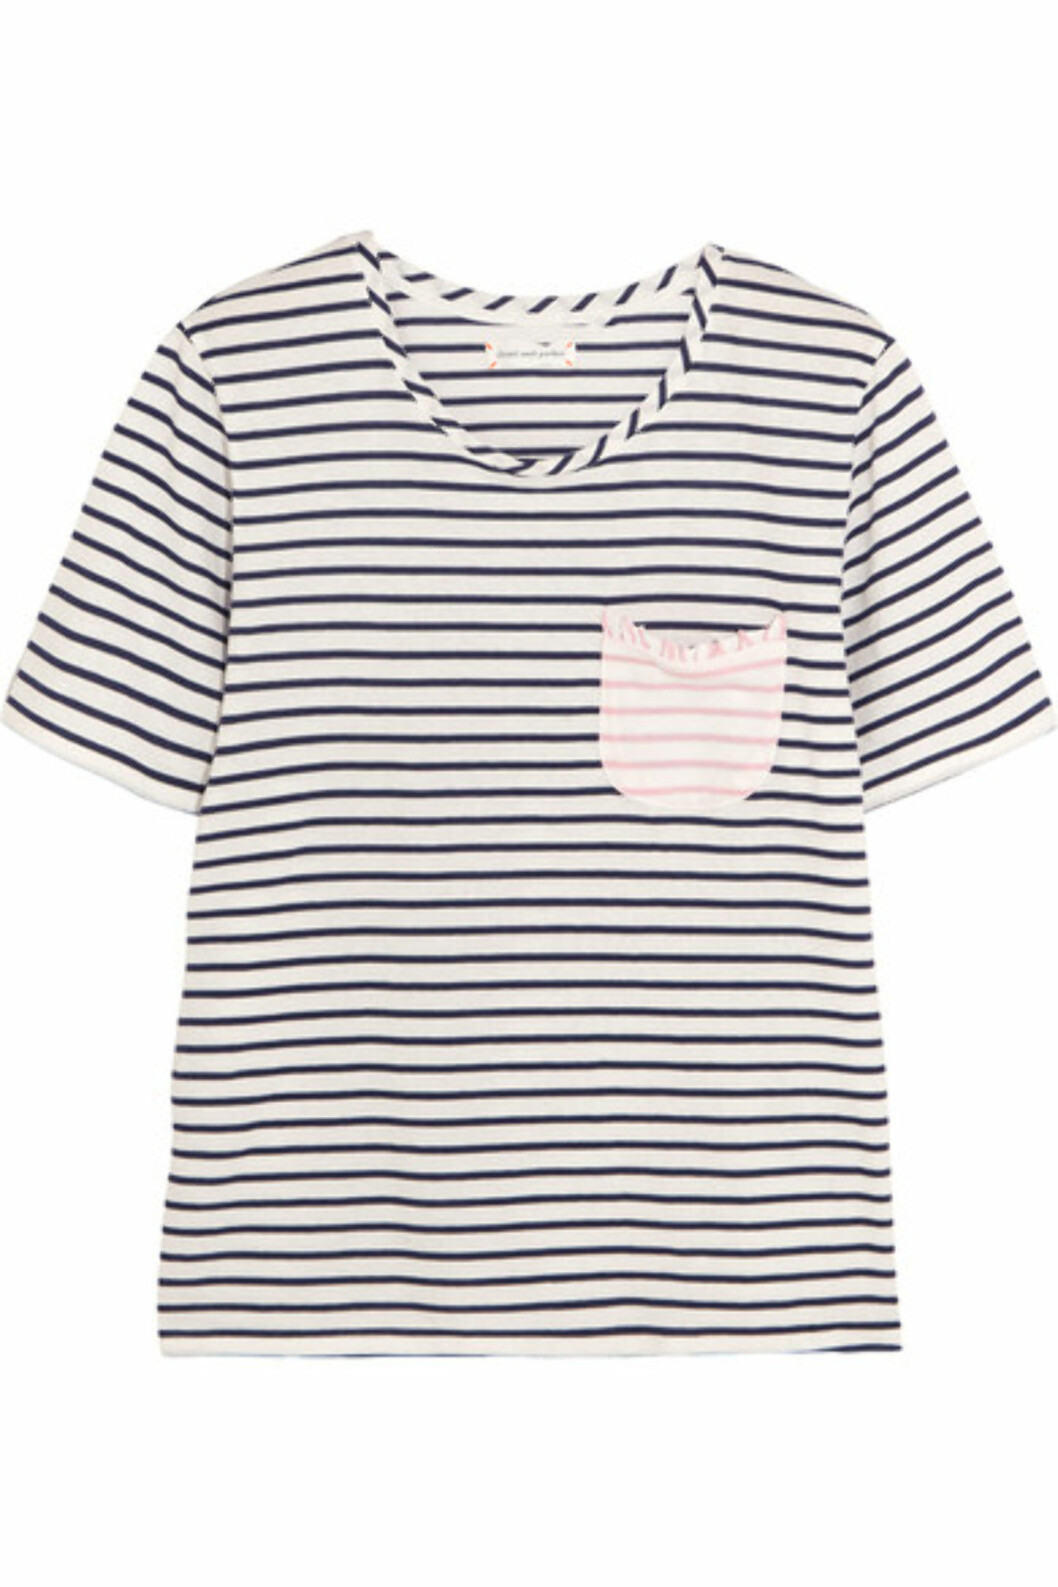 T-skjorte fra Chinti And Parker via Net-a-porter.com | kr 1131 | https://www.net-a-porter.com/no/en/product/738193/Chinti_and_Parker/striped-cotton-jersey-t-shirt